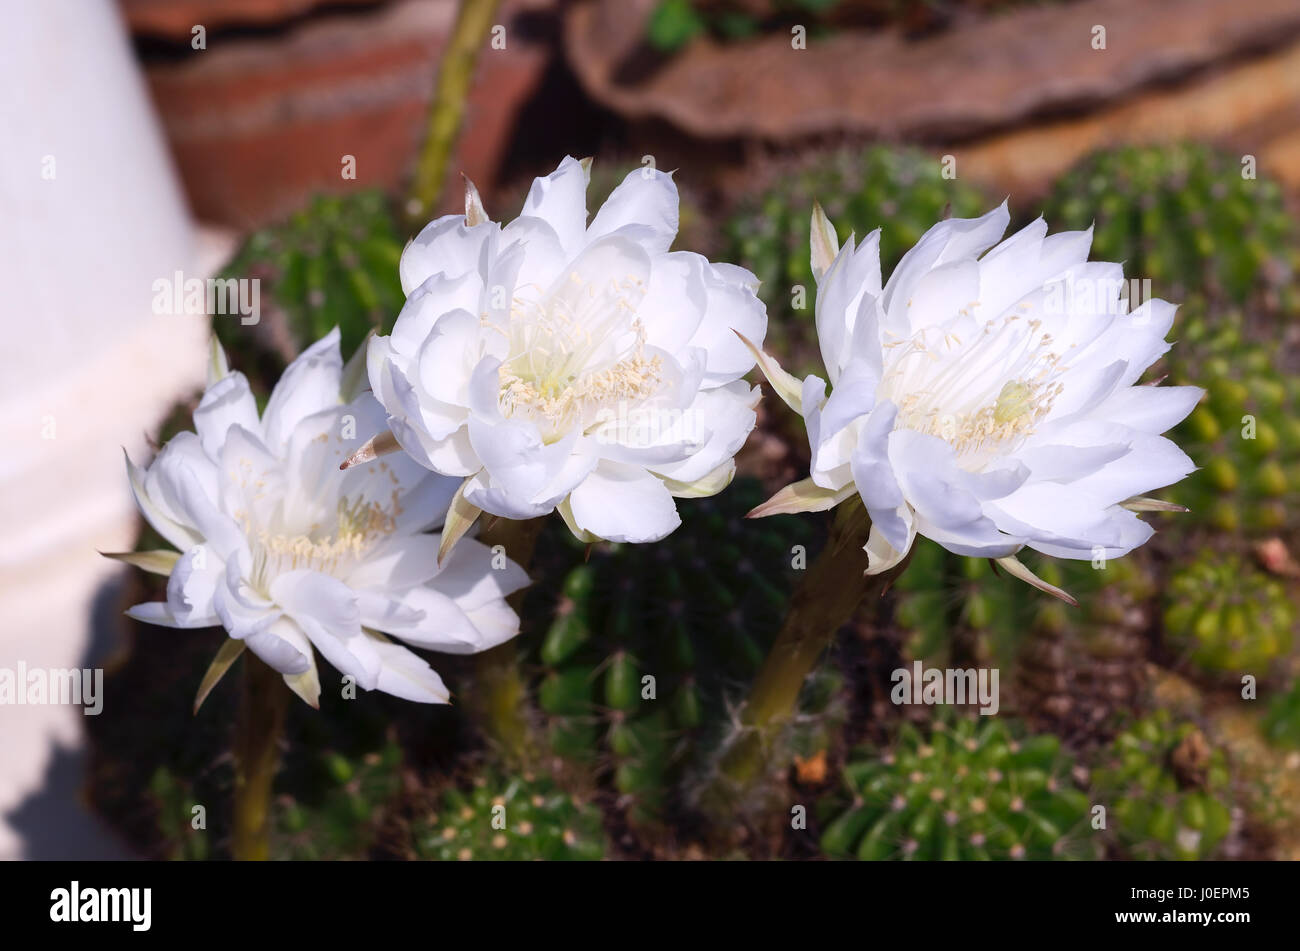 Beautiful White Cactus Flower In Thailand Stock Photo 138008085 Alamy